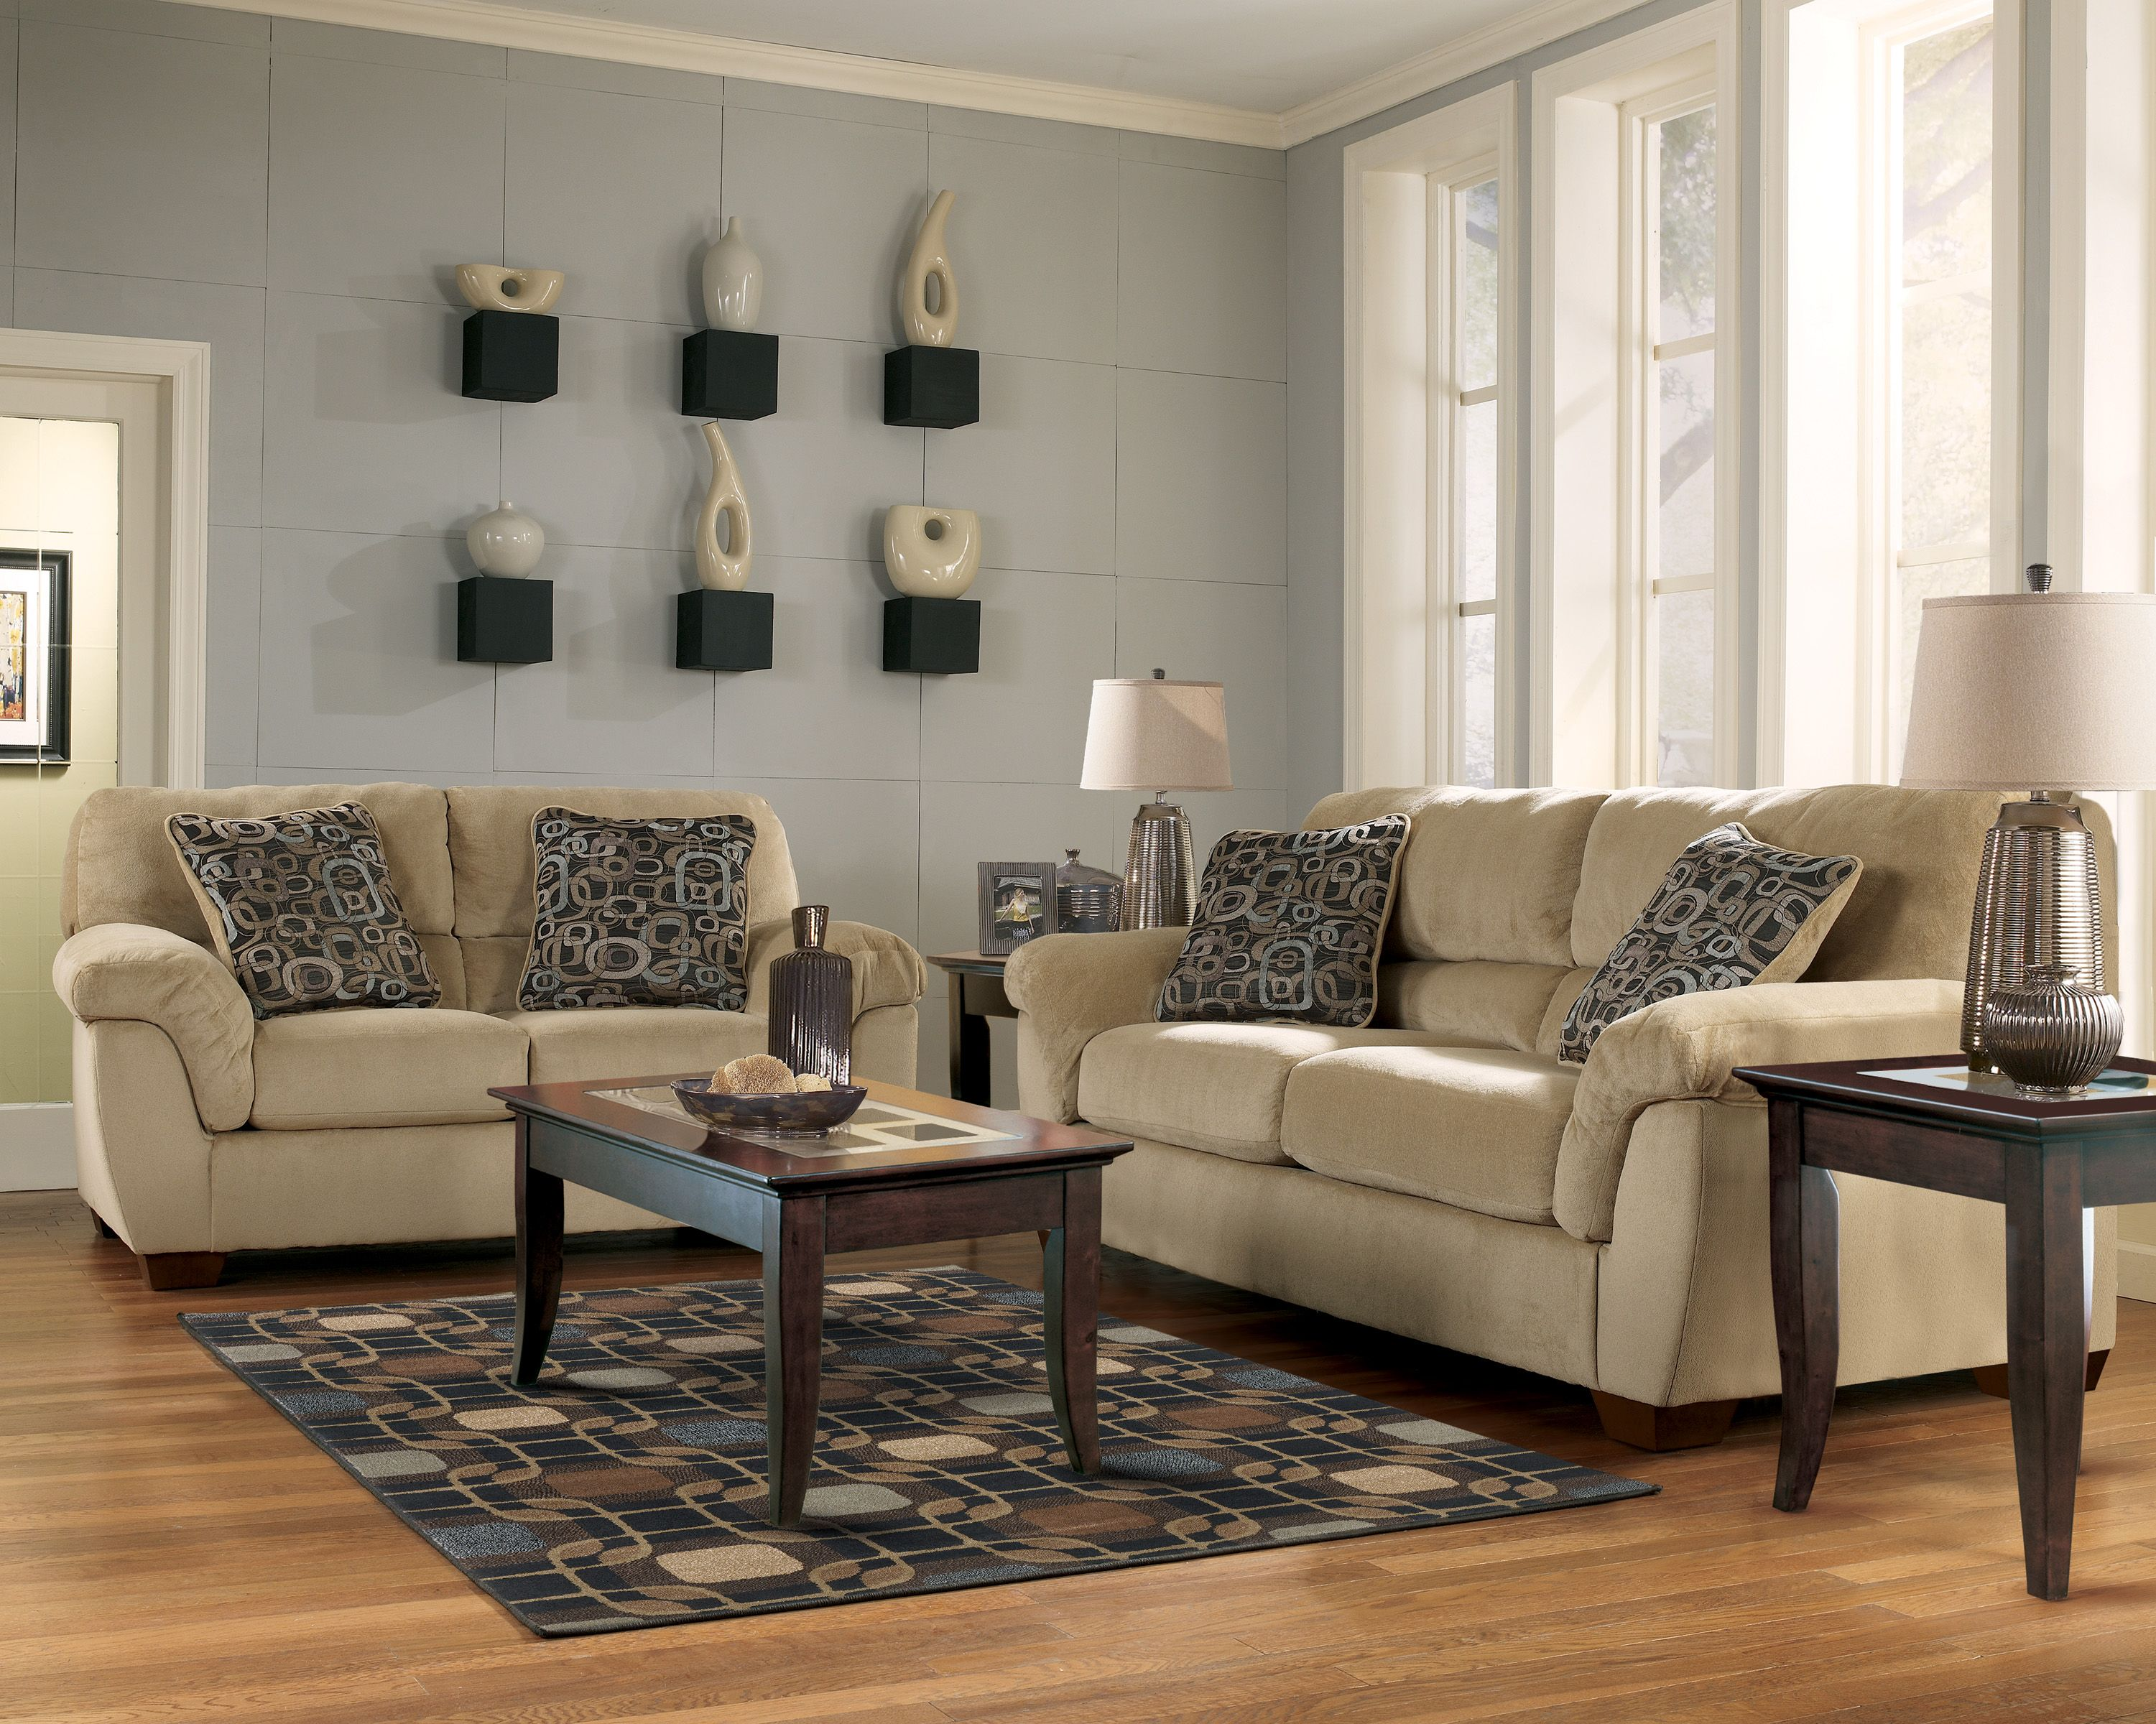 Discontinued Ashley Furniture As 84101 Discontinued 84101 Macie